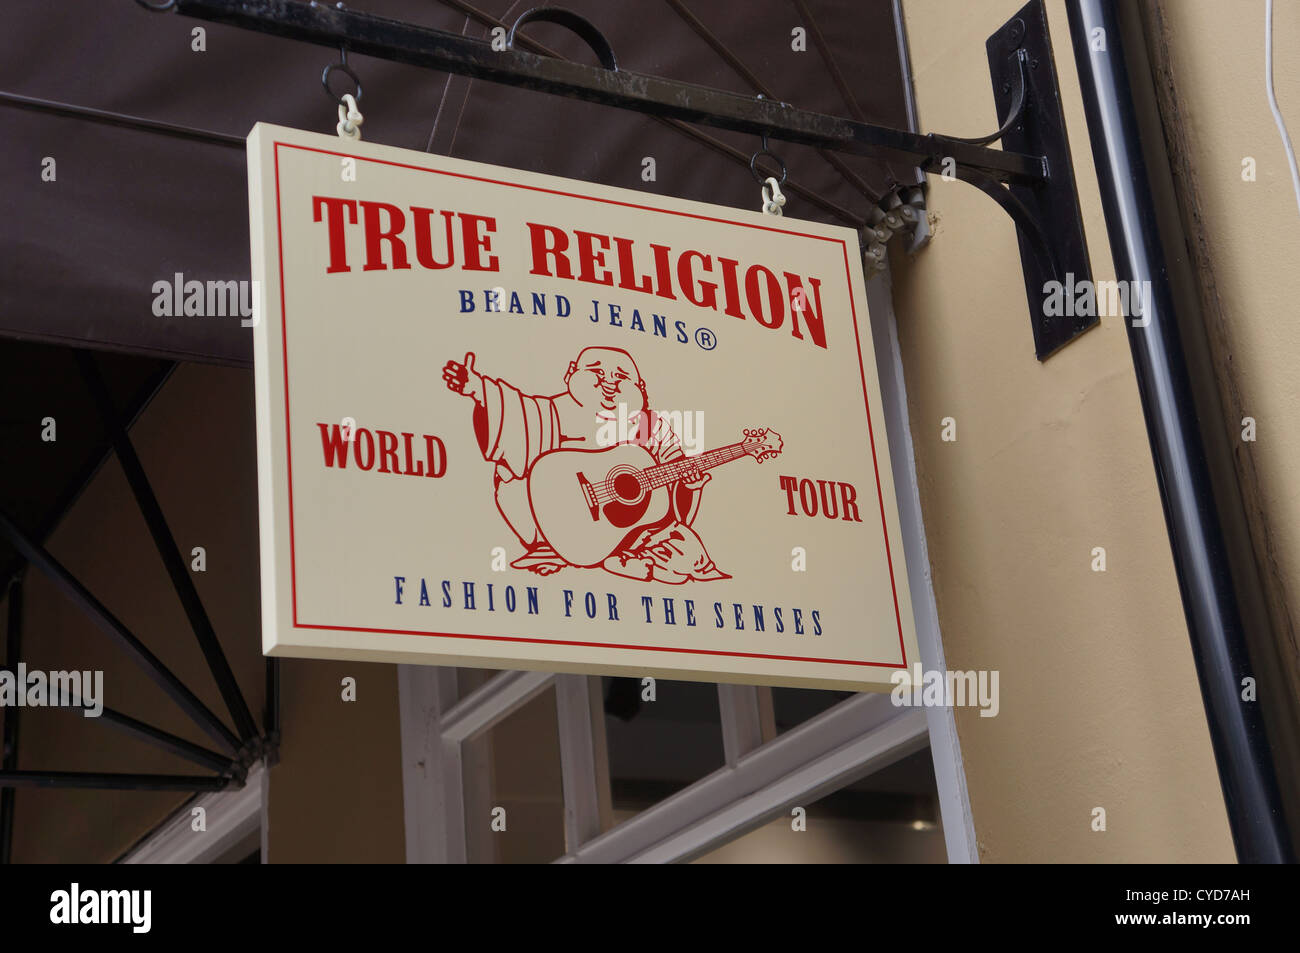 true religion brand jeans company outlet store at bicester. Black Bedroom Furniture Sets. Home Design Ideas